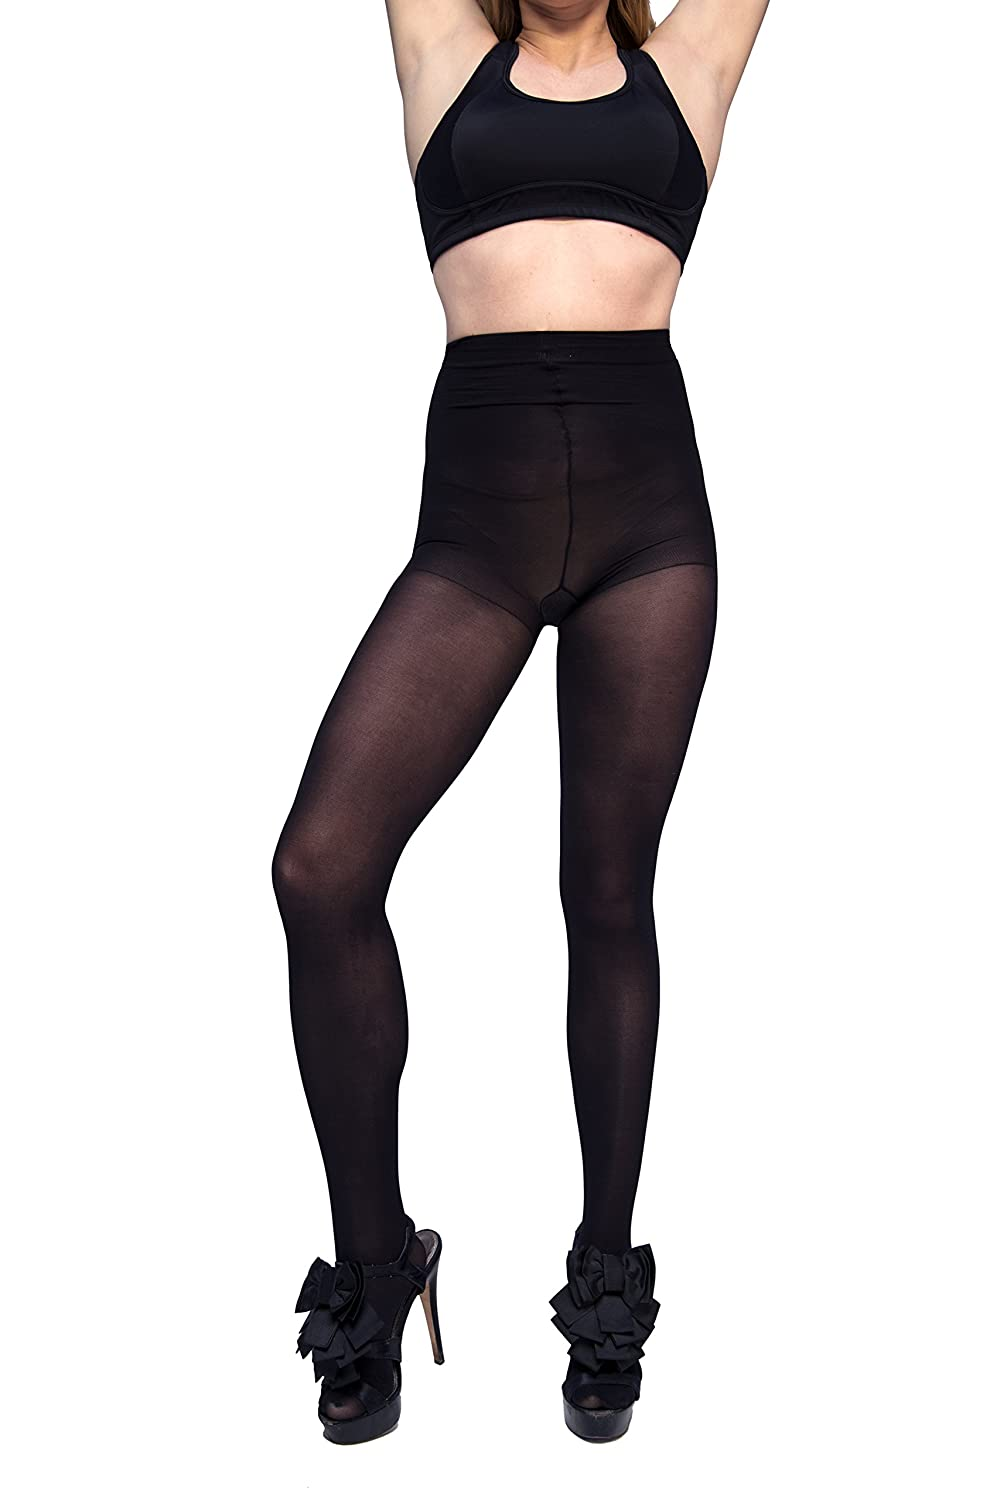 7595945c4df Amazon.com  Curvation Women s Plus Size Tummy Smoother Control Top  Microfiber Tights